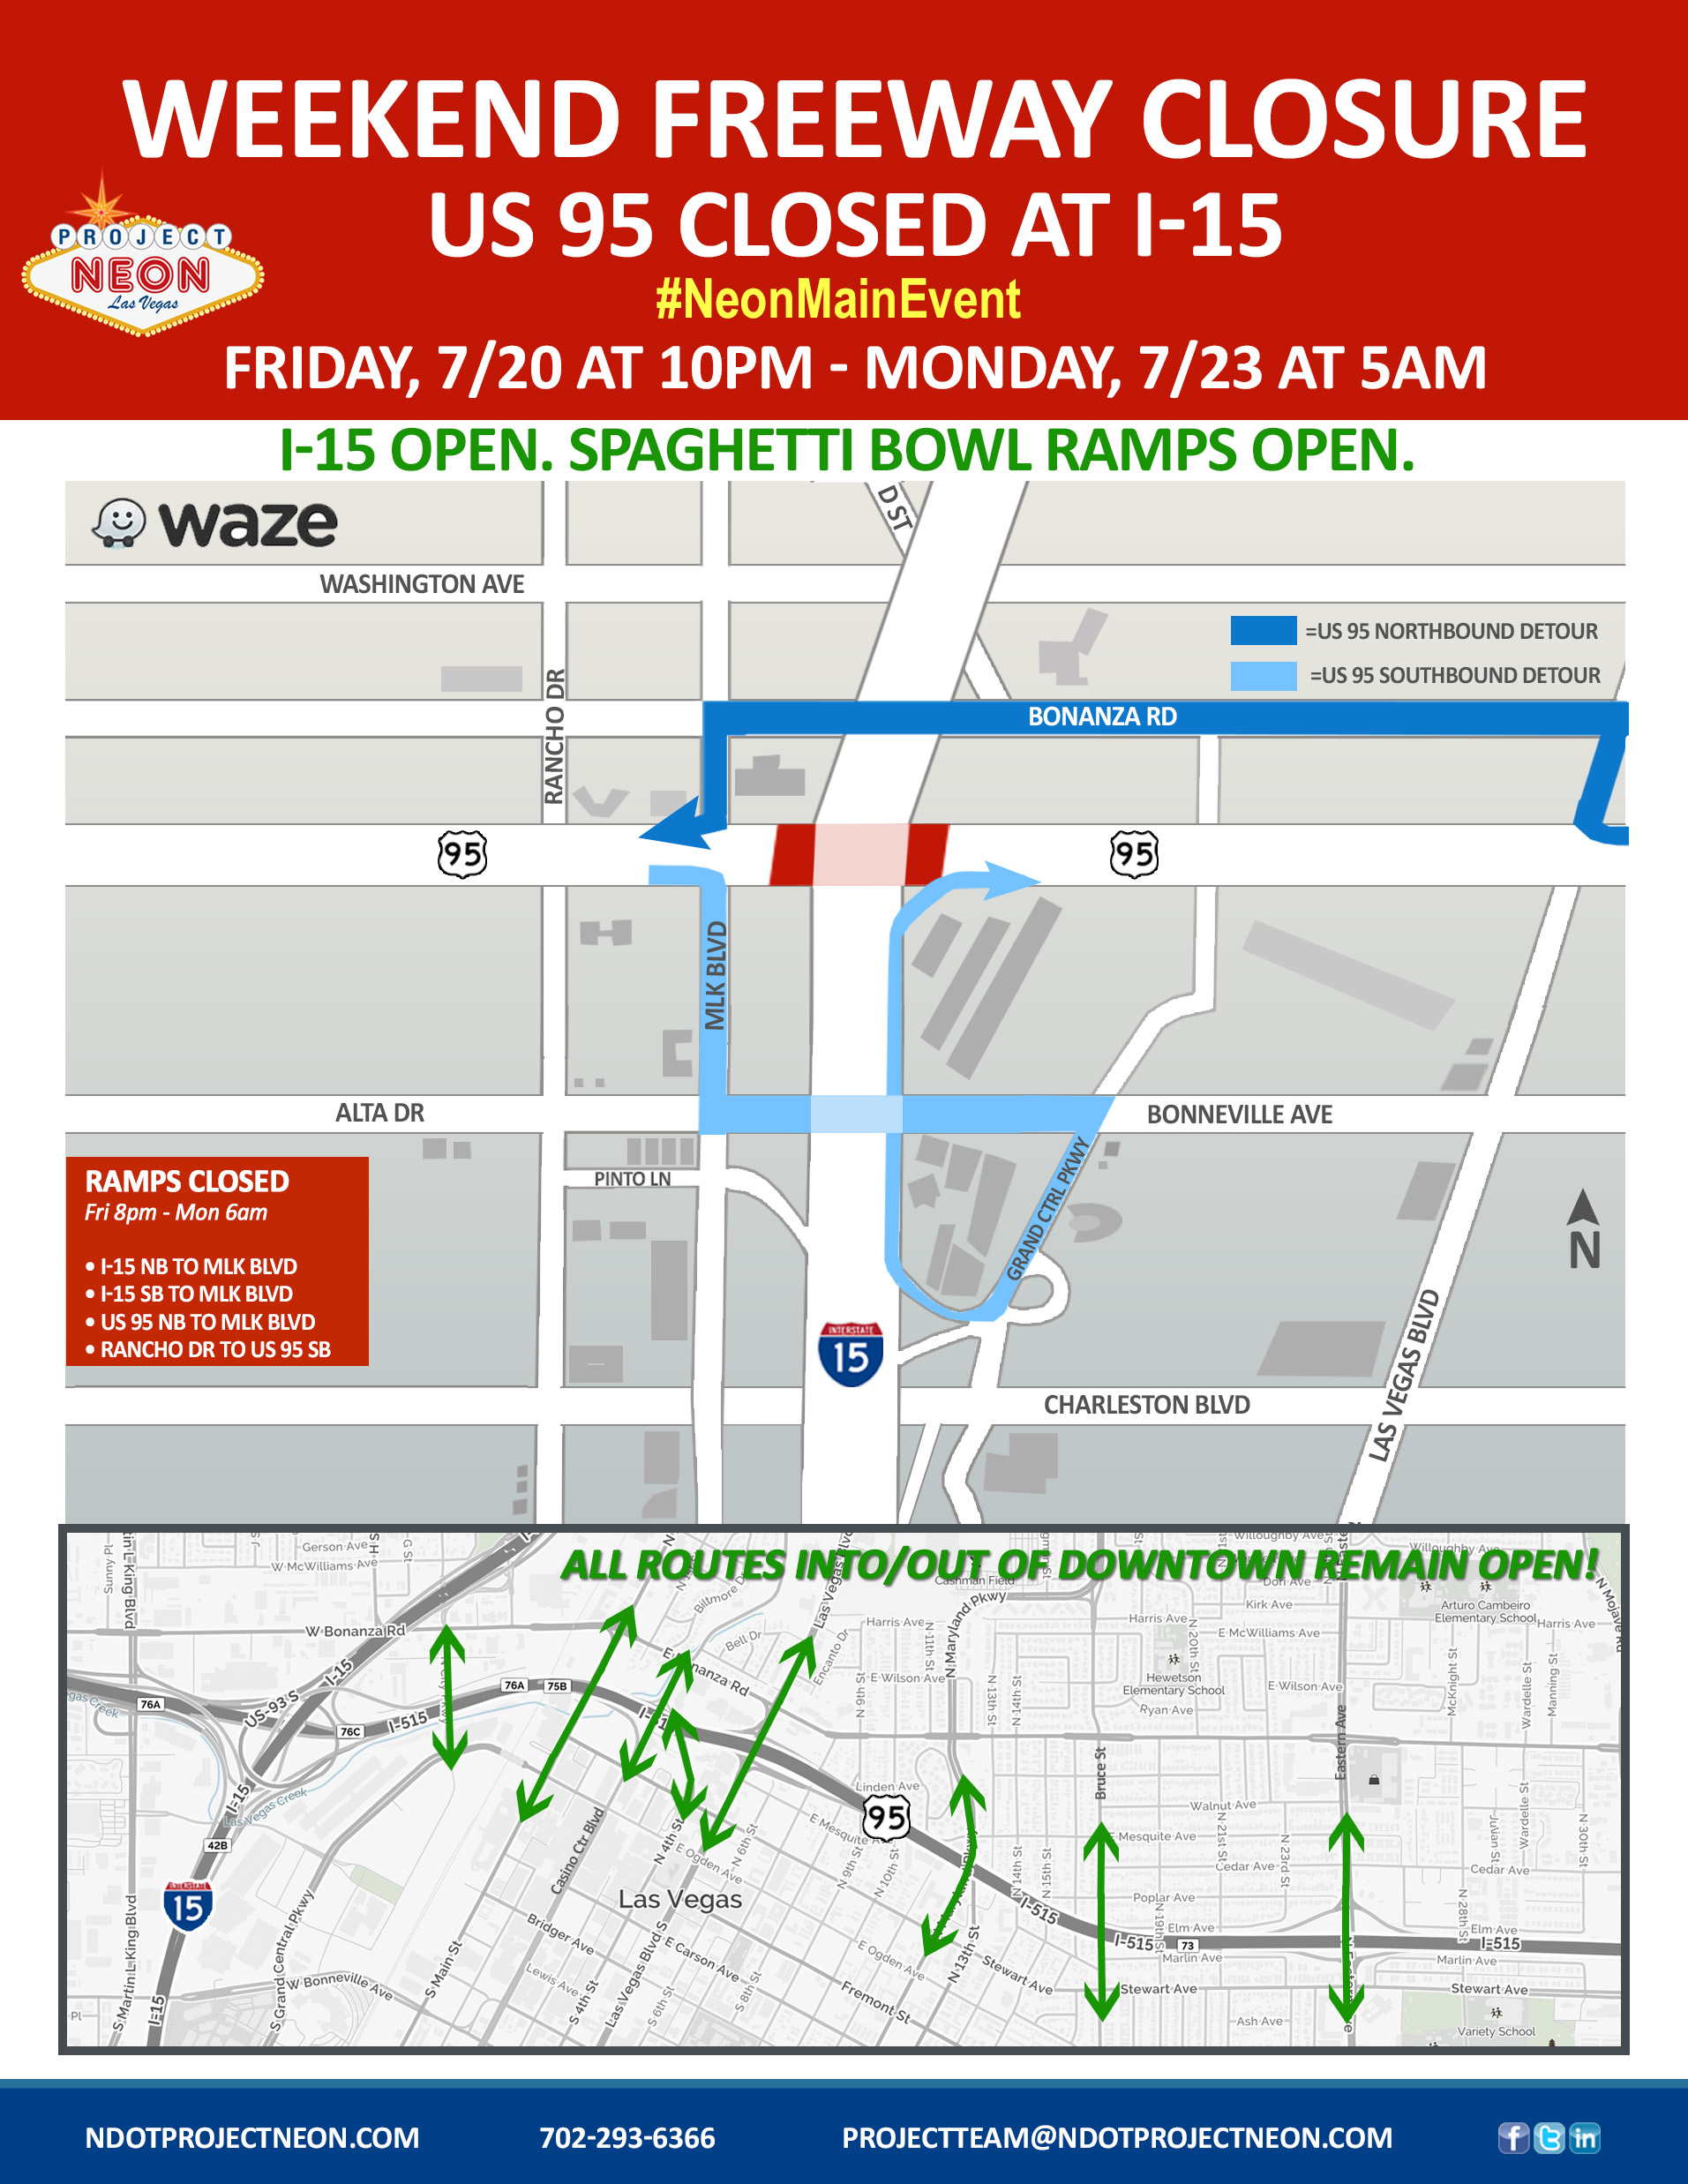 U S  Highway 95 Full Closure at I-15 This Weekend in Downtown Las